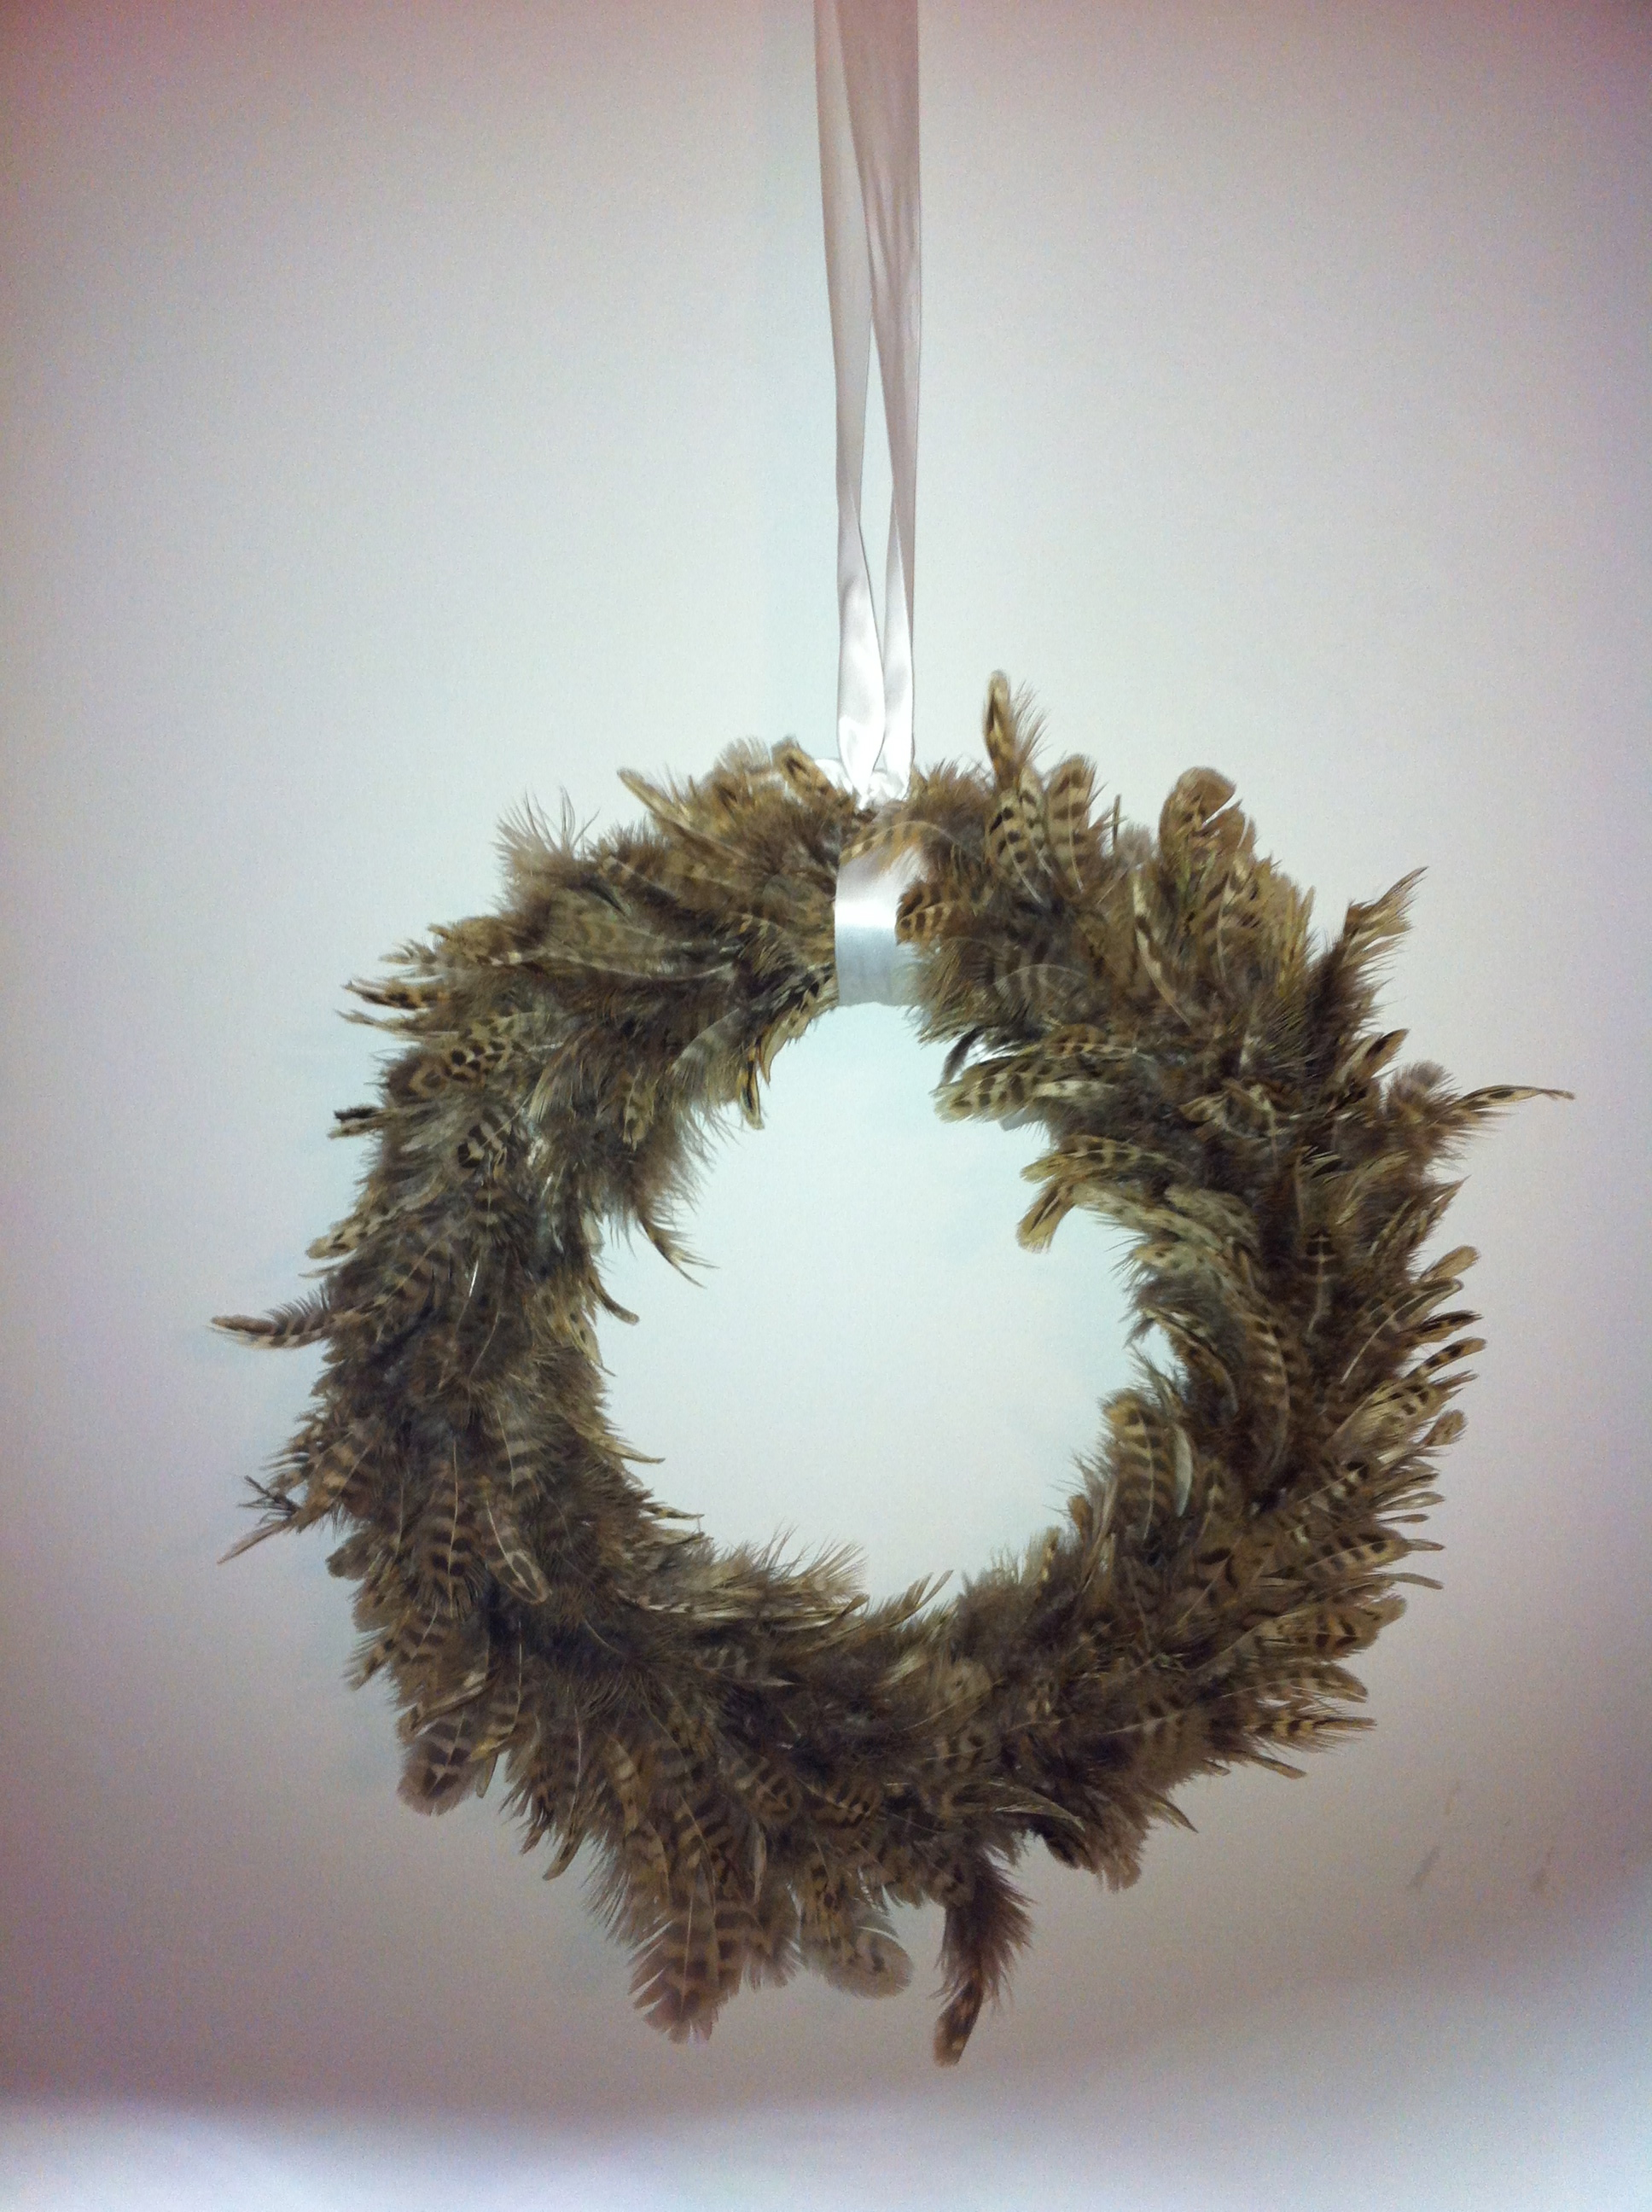 Handmade feathered wreath £10